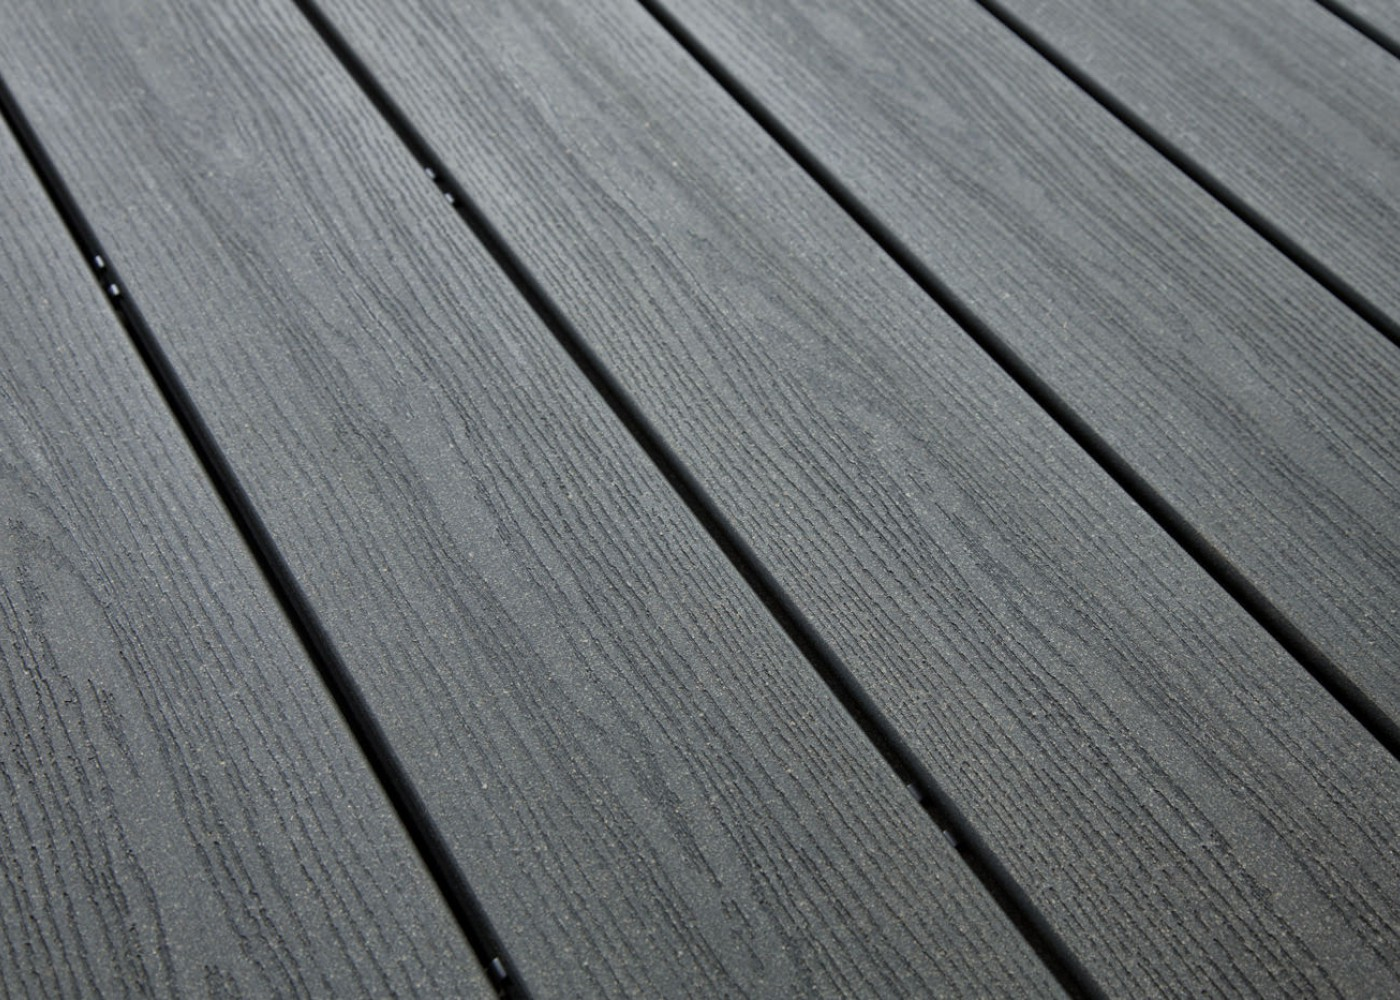 Lame Terrasse Bois Composite Teinte Gris Anthracite Structuré Fixation Invisible - 23/180/4000